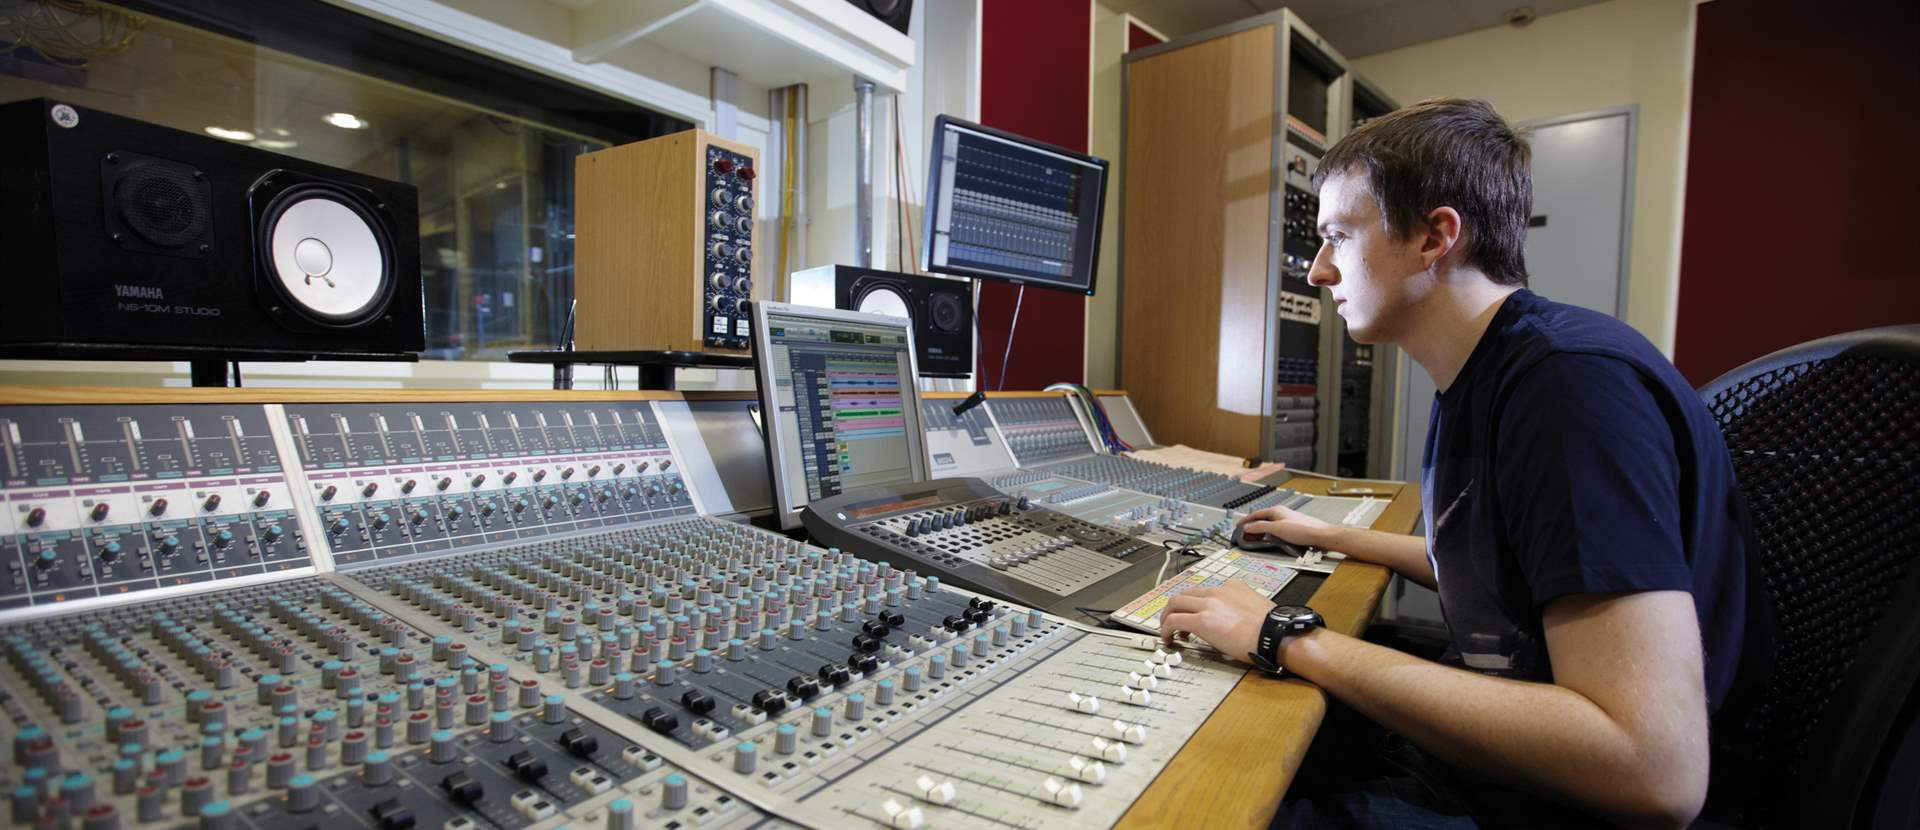 BSc (Hons) Popular Music Production